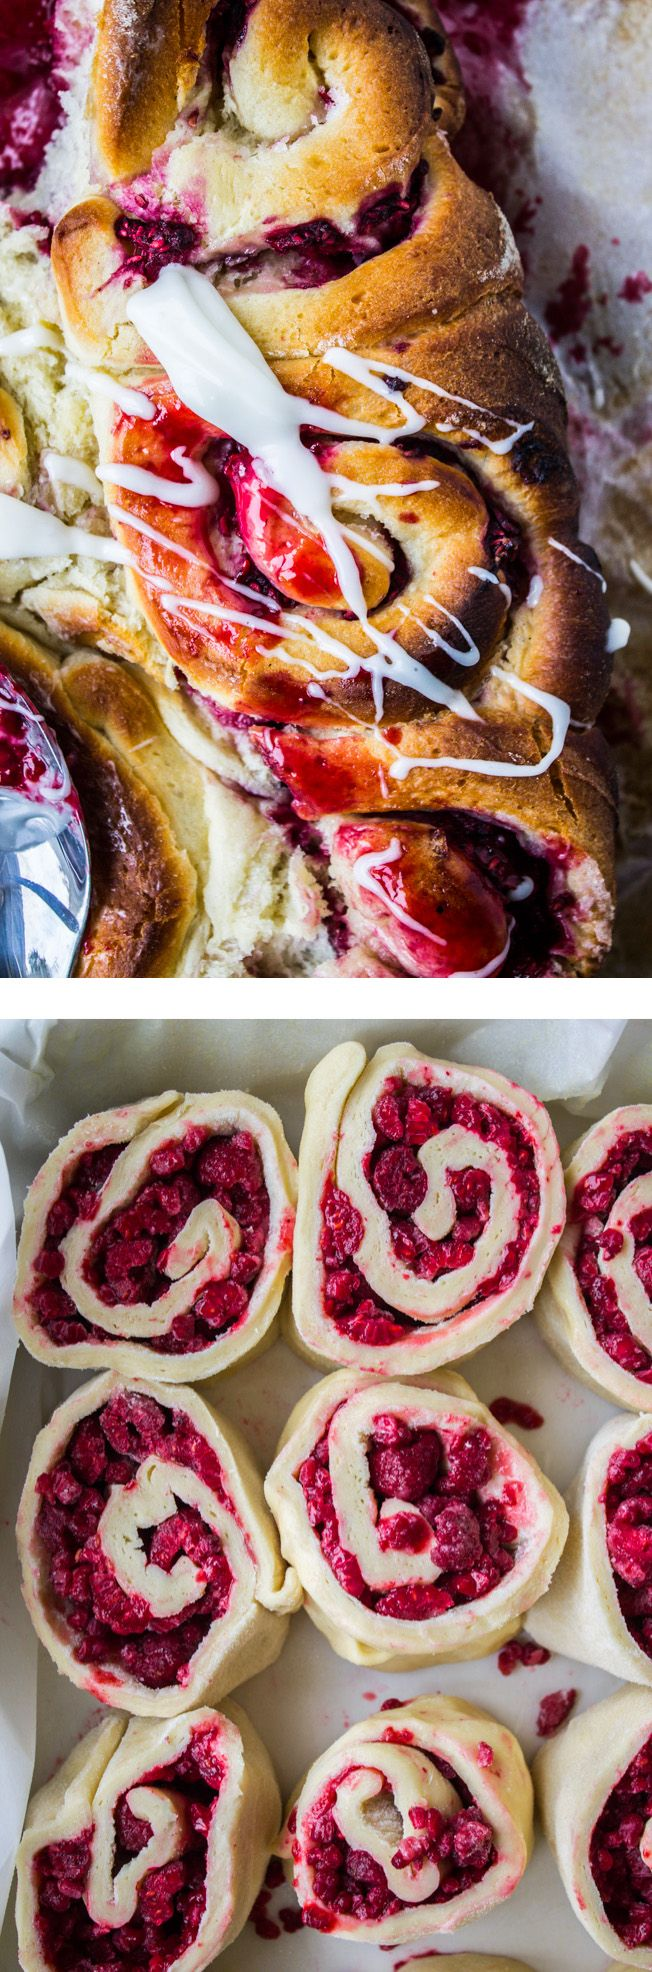 Raspberry Sweet Rolls with Coconut Cream Cheese Frosting - The Food Charlatan